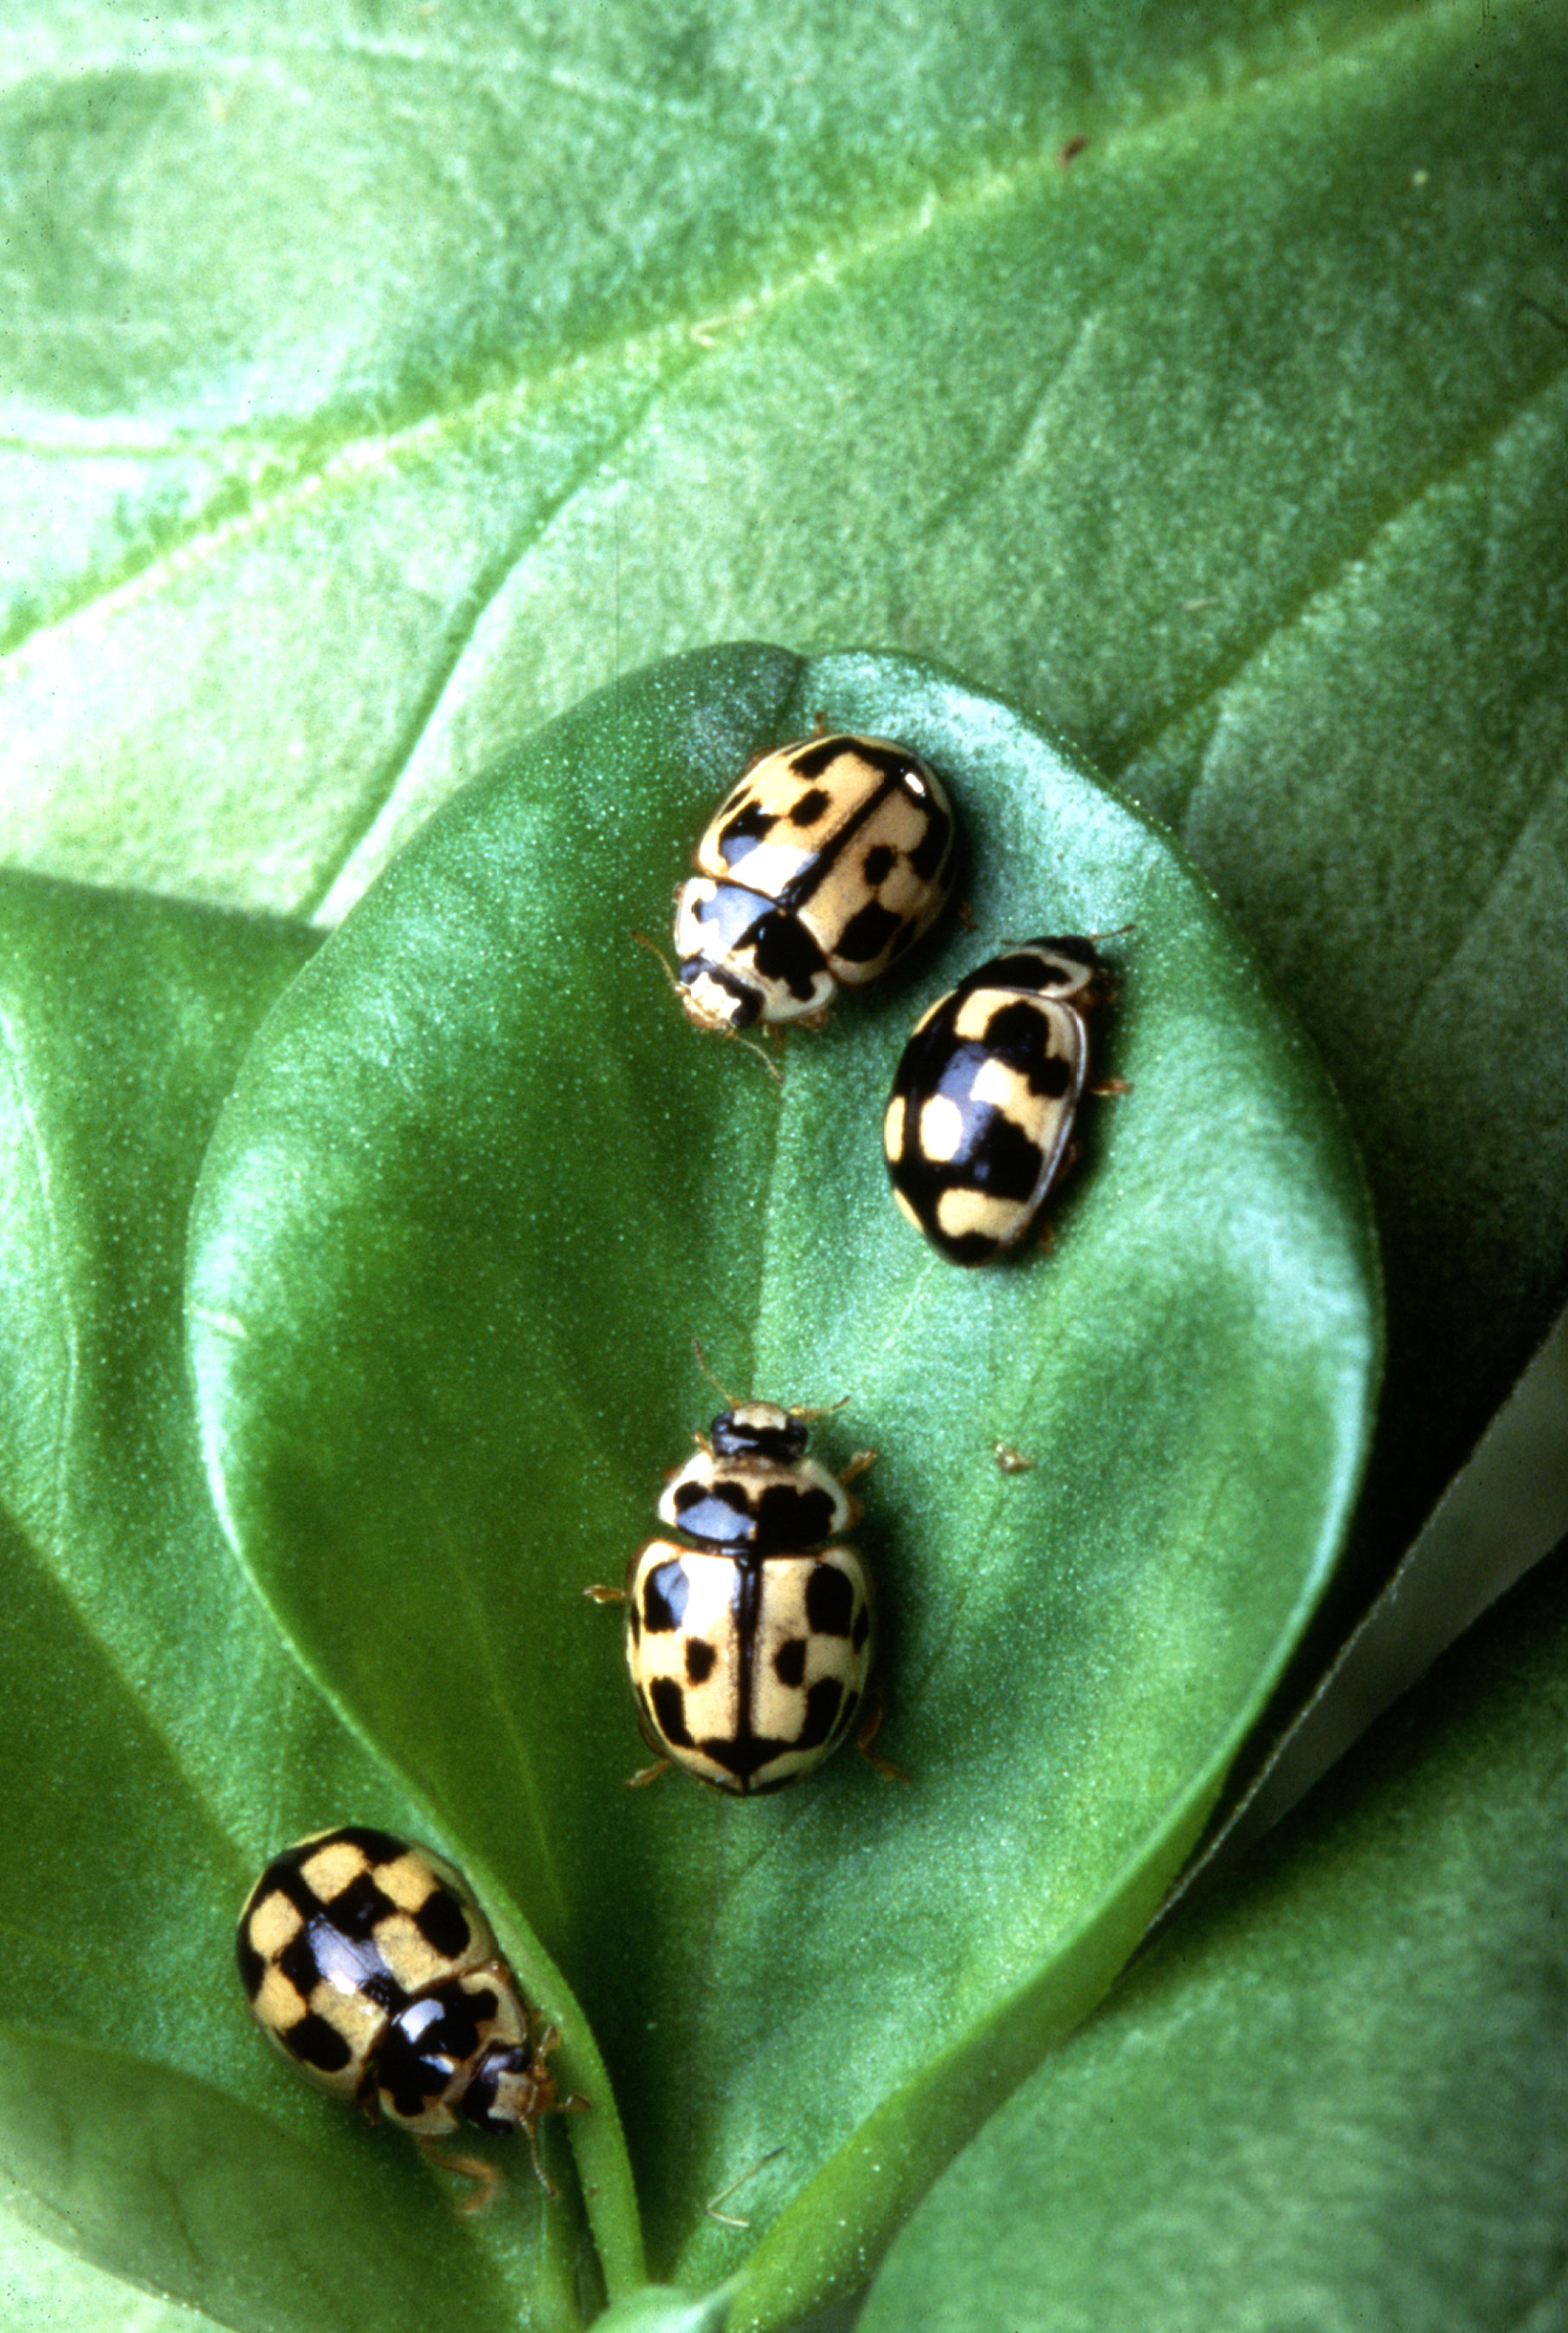 Small black spotted beetles in house -  14 Spot Lady Beetles On Fava Bean Leaf Link To Photo Information